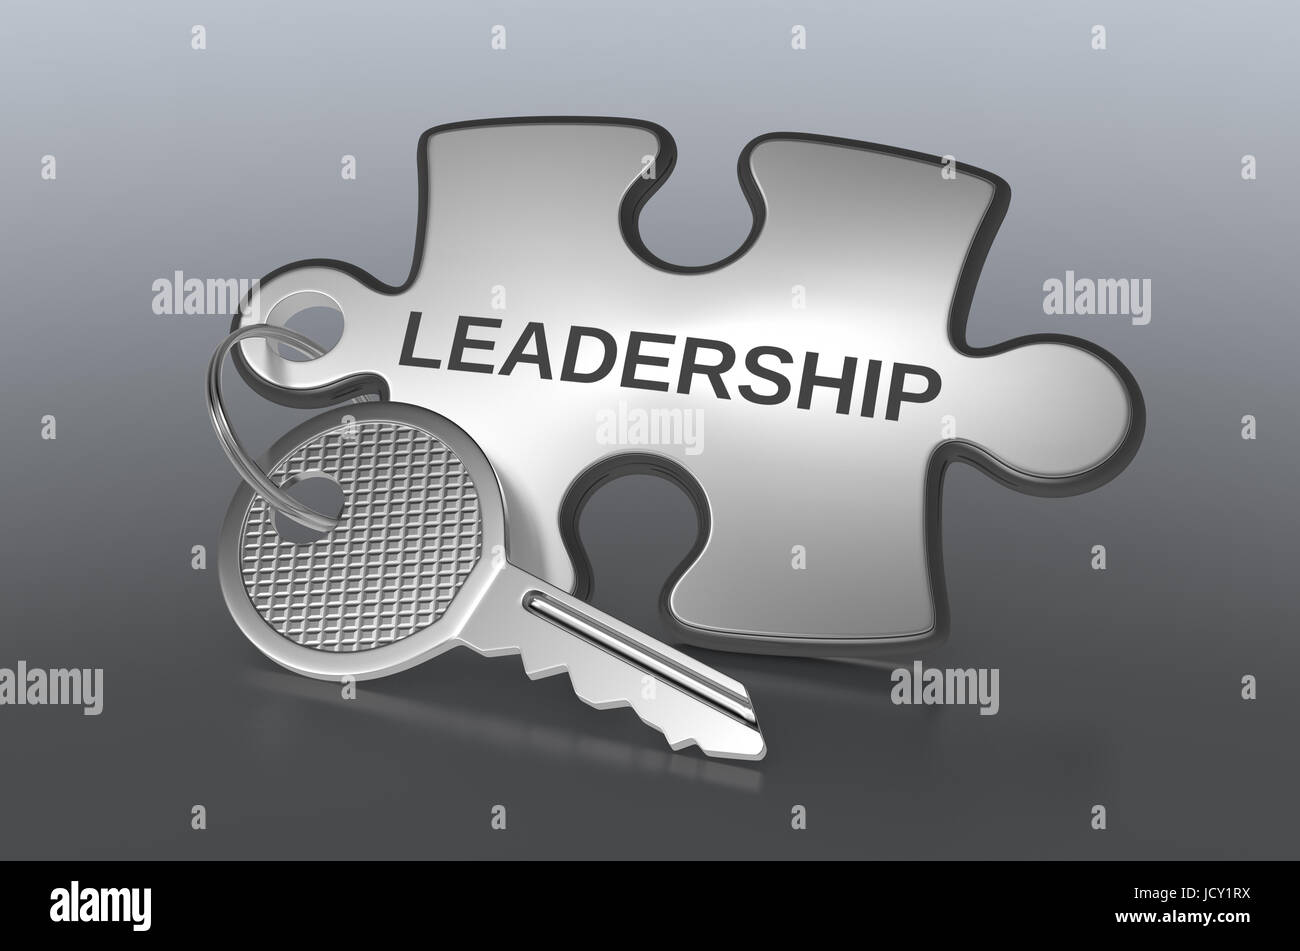 one jigsaw puzzle with text: leadership, concept illustration (3d render) - Stock Image